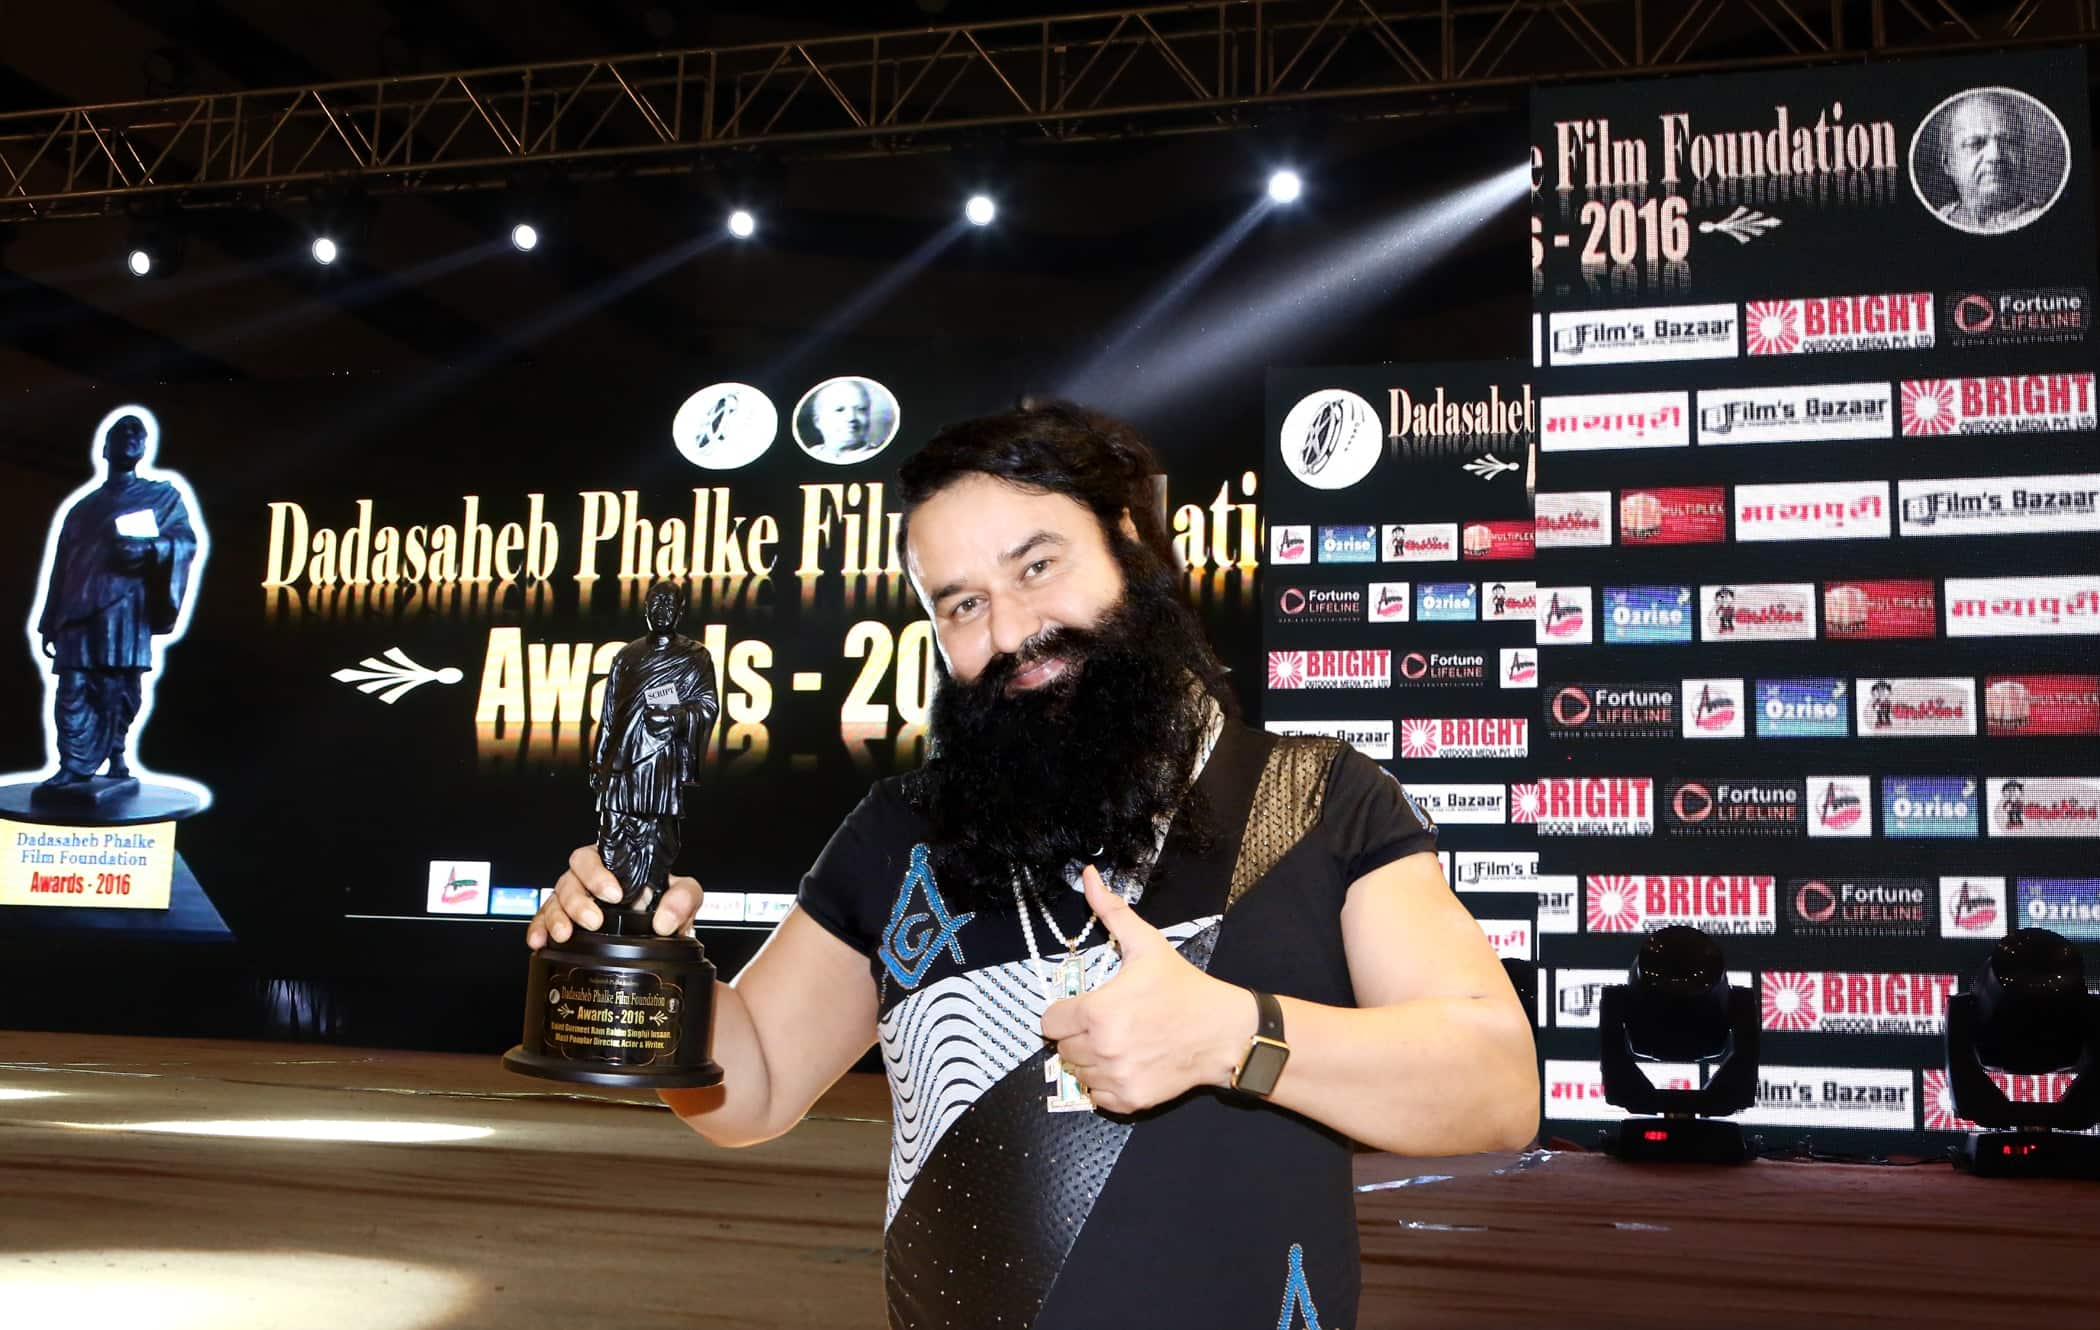 5 Bollywood Actors You Didn't Know Have Won The Prestigious Dadasaheb Phalke Award or Have They?